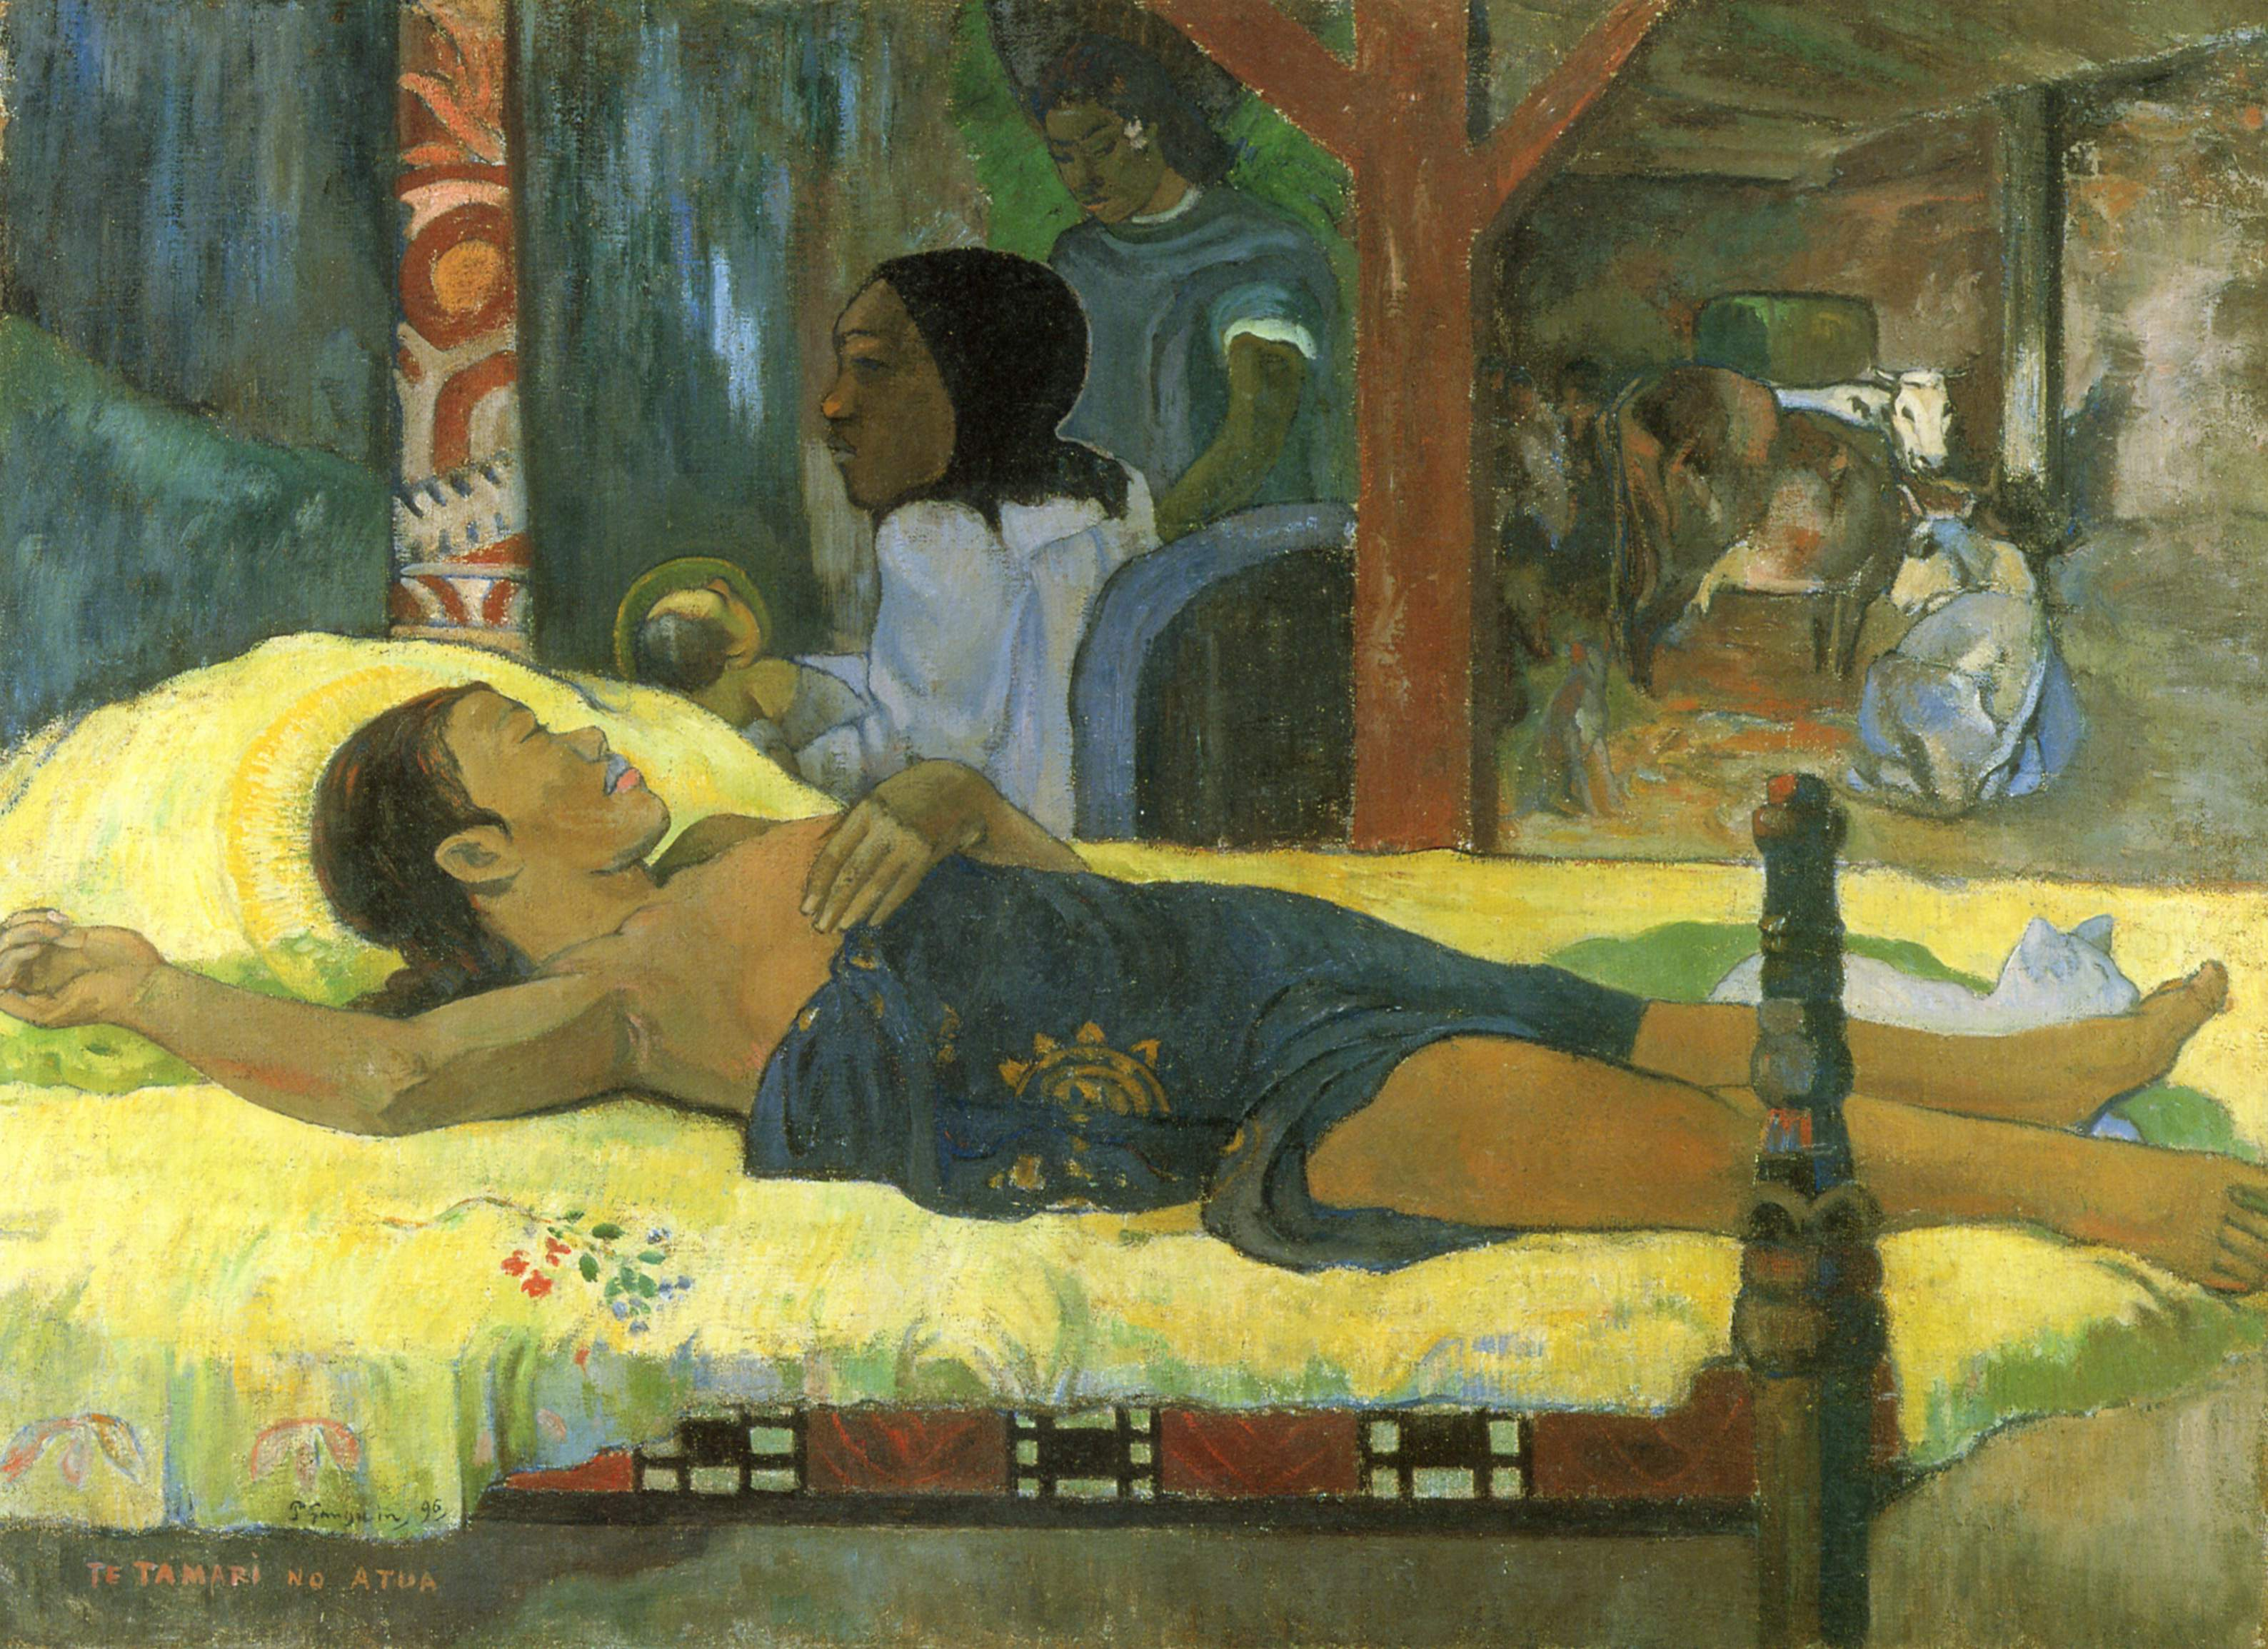 File:Paul Gauguin 062.jpg - Wikimedia Commons